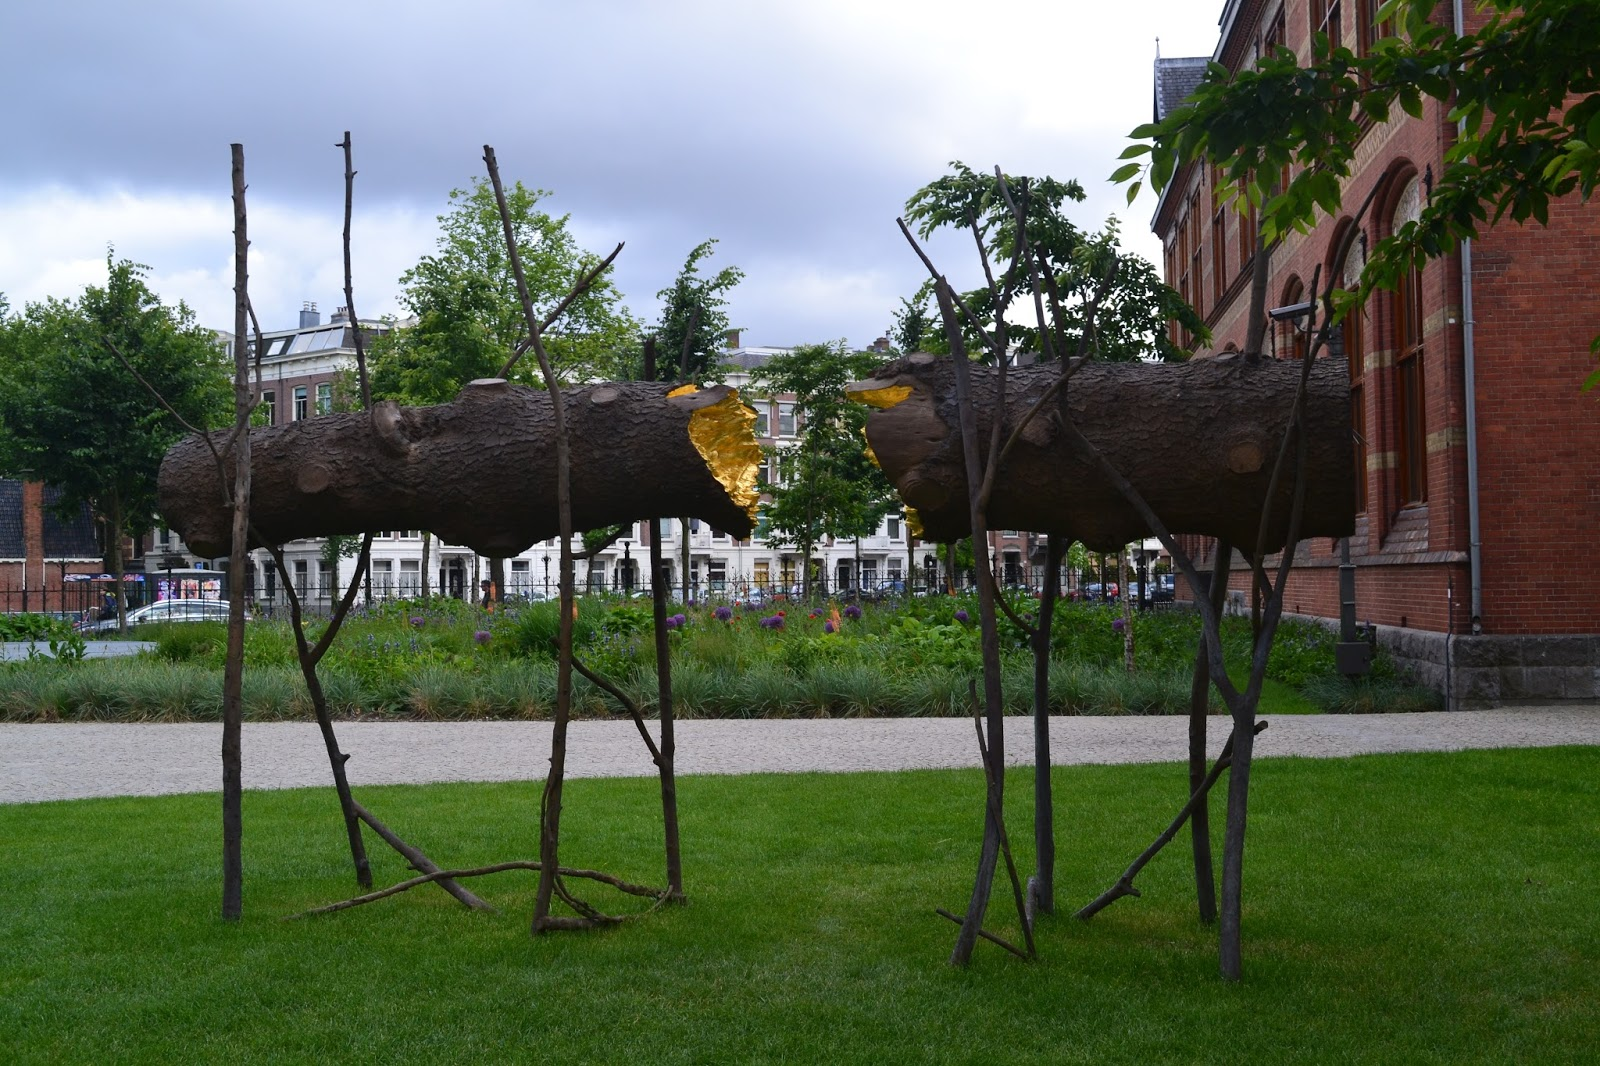 Arte Povera Nederland At Rijksmuseum S Art Gardens Penone Built Bridges For Our Back To